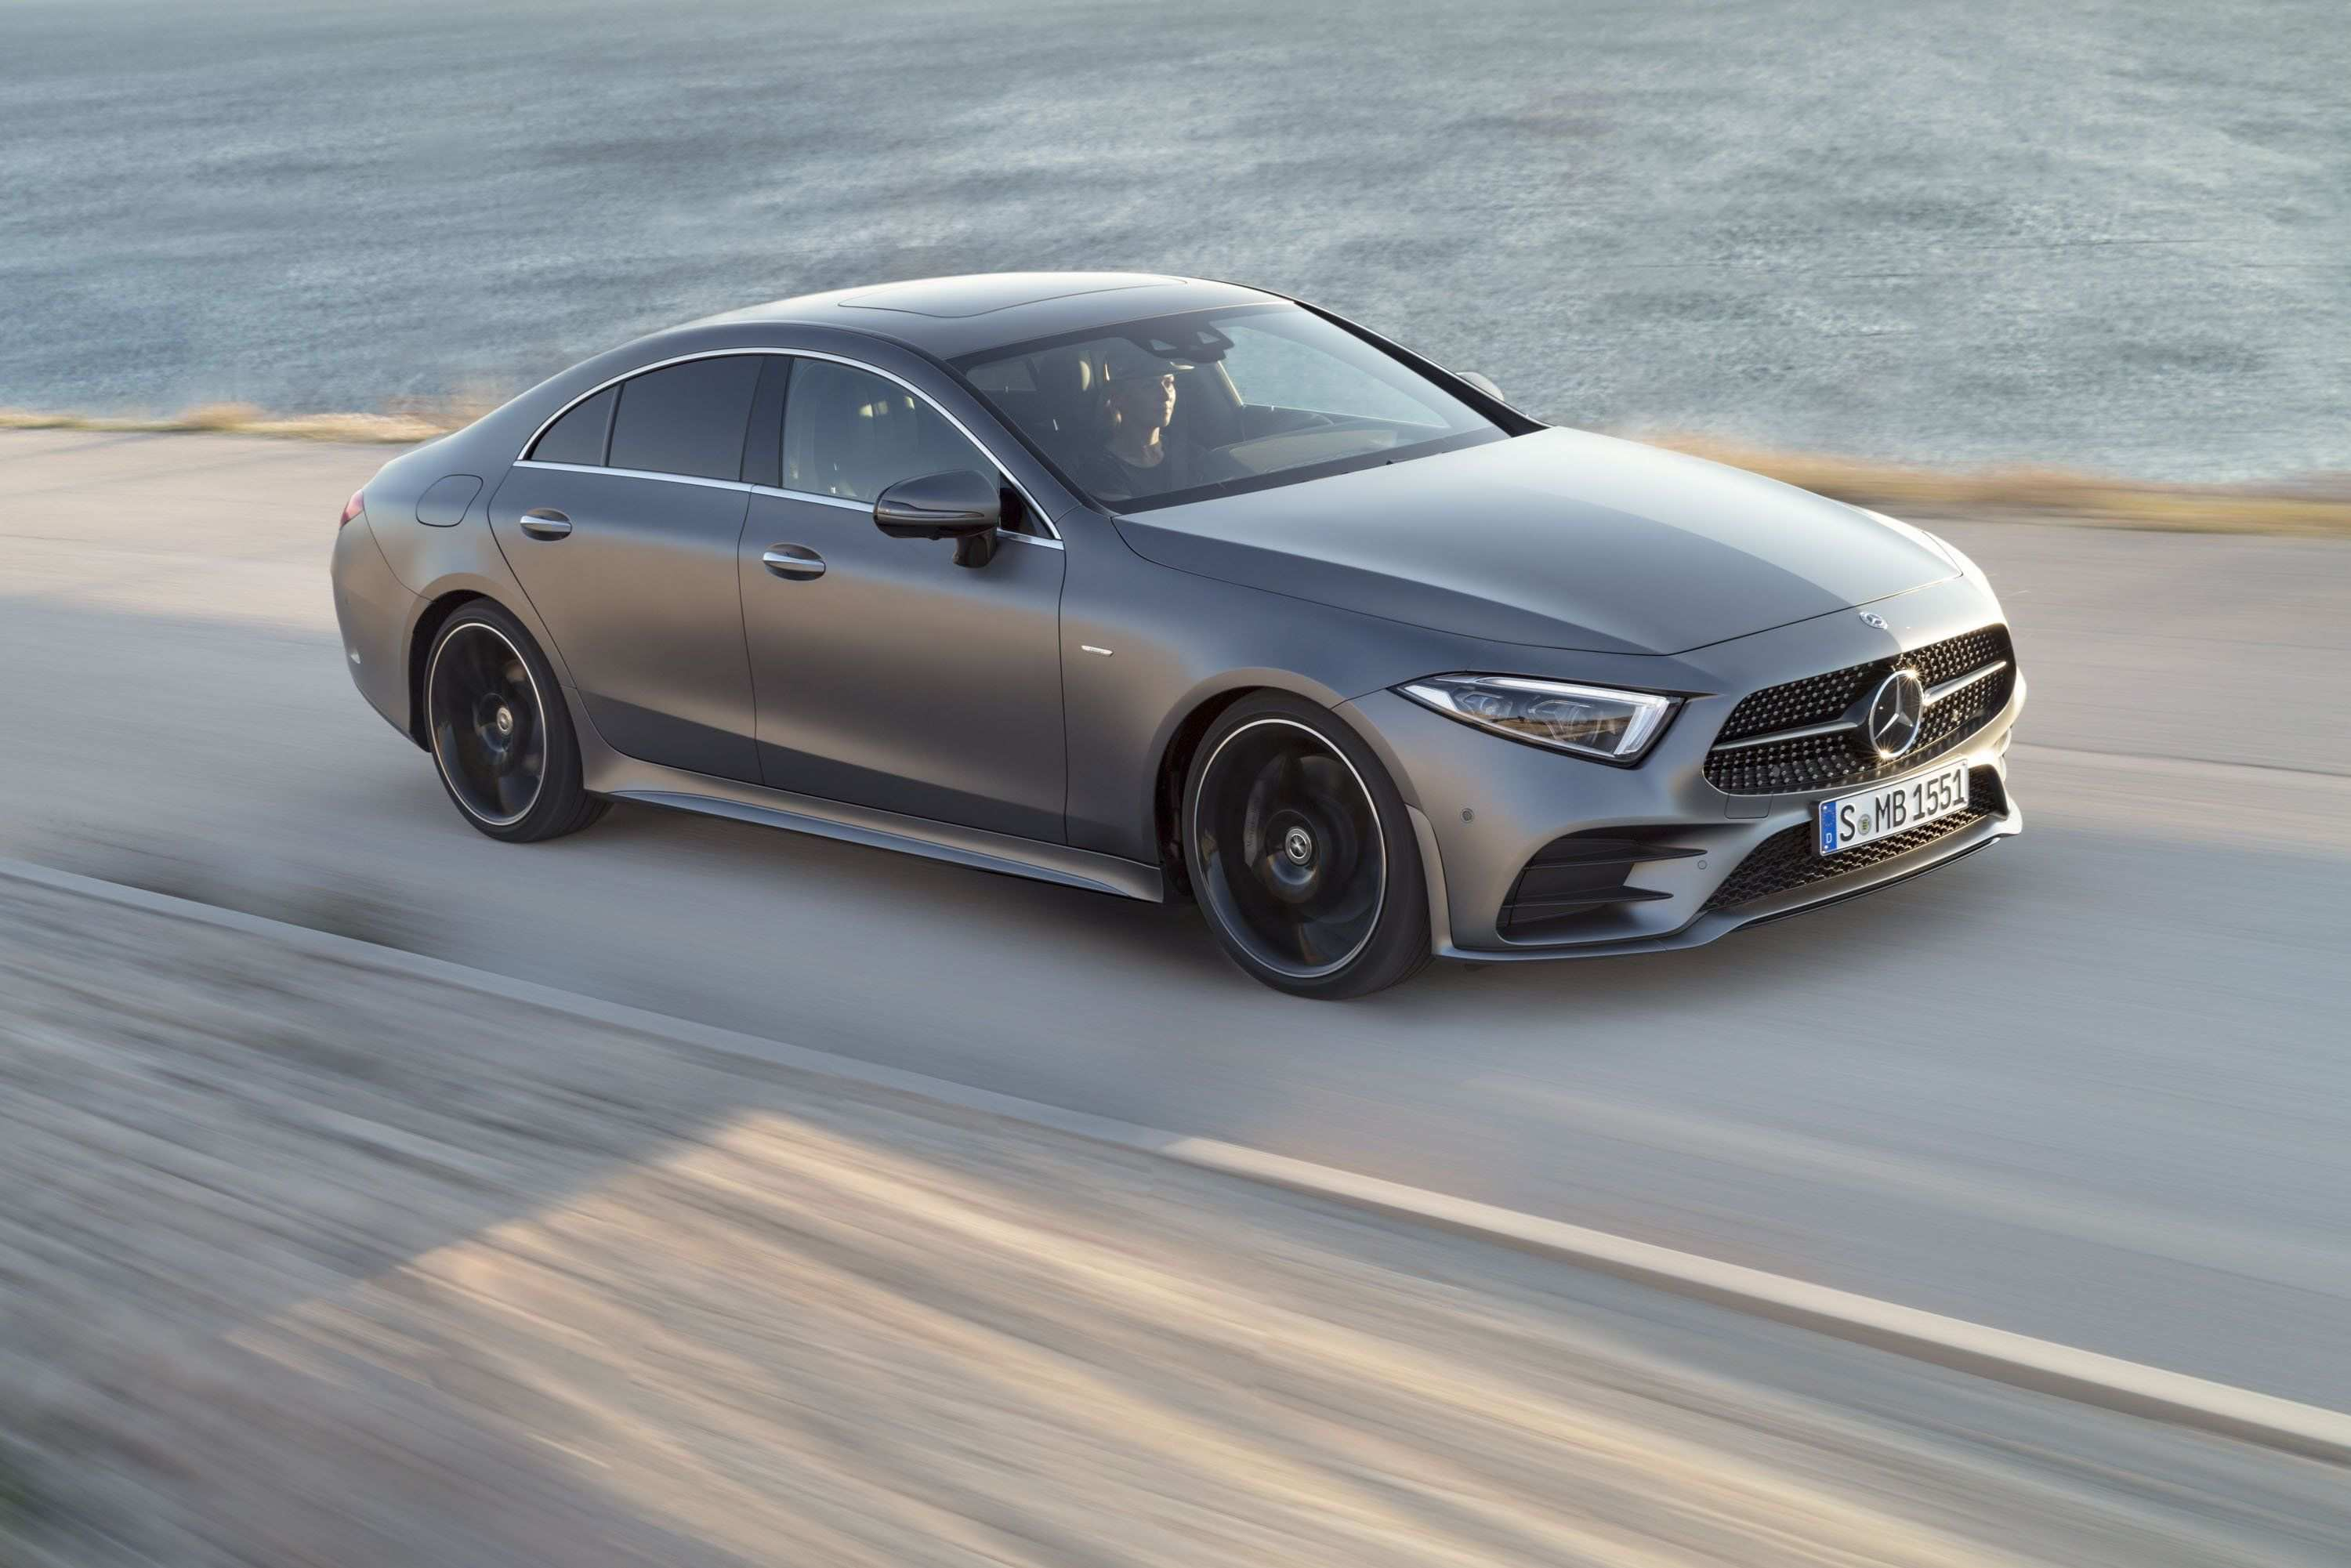 98 Concept of Mercedes Cls 2020 Exterior Redesign and Concept for Mercedes Cls 2020 Exterior